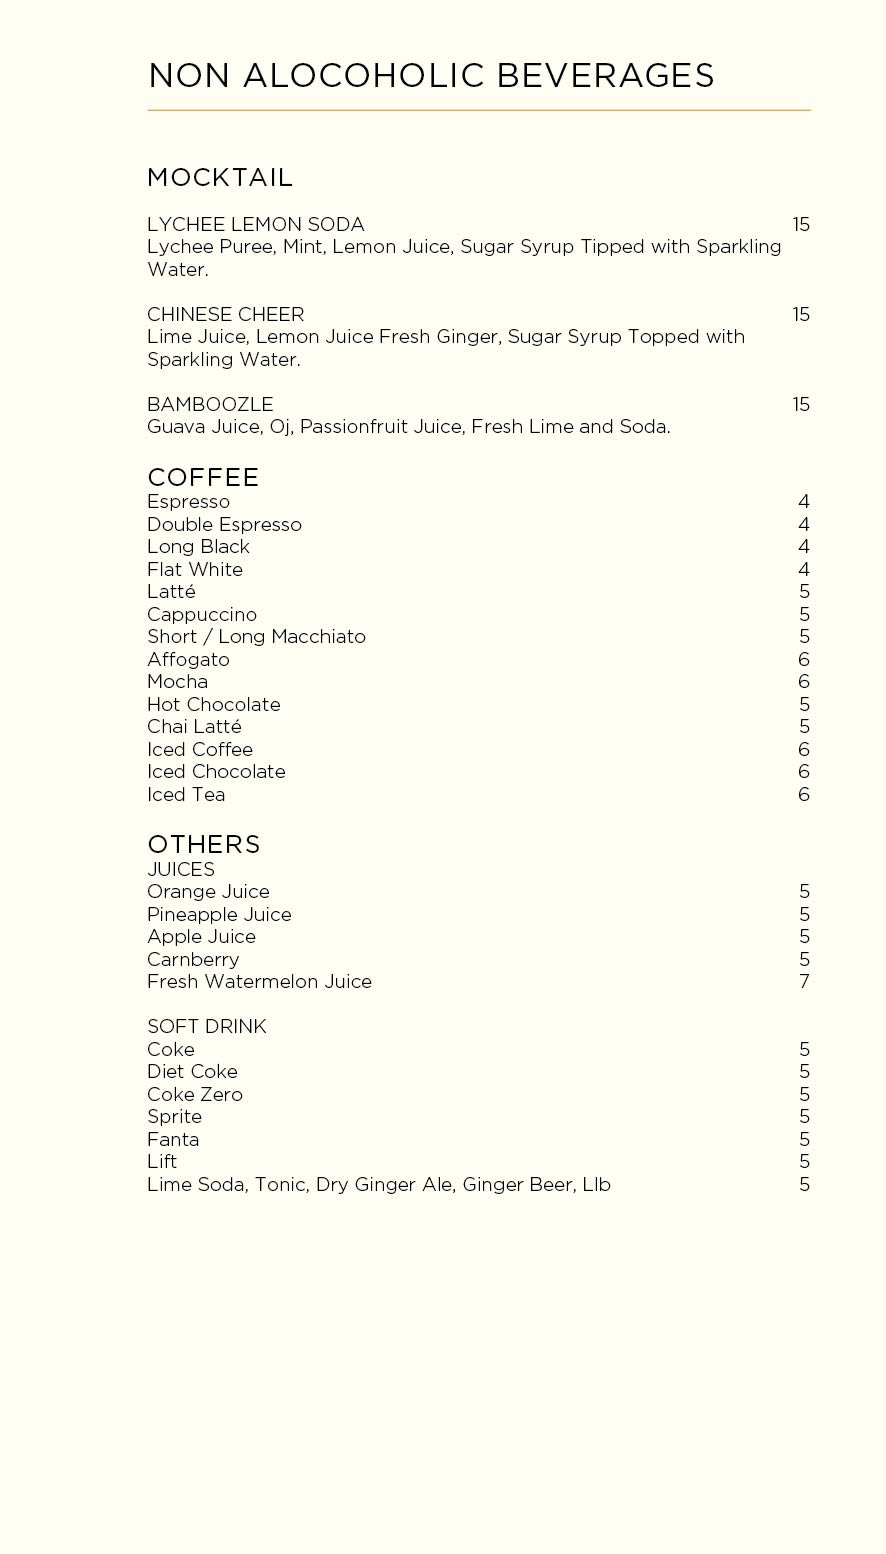 150x263mm_WineList_8point_01-08.jpg